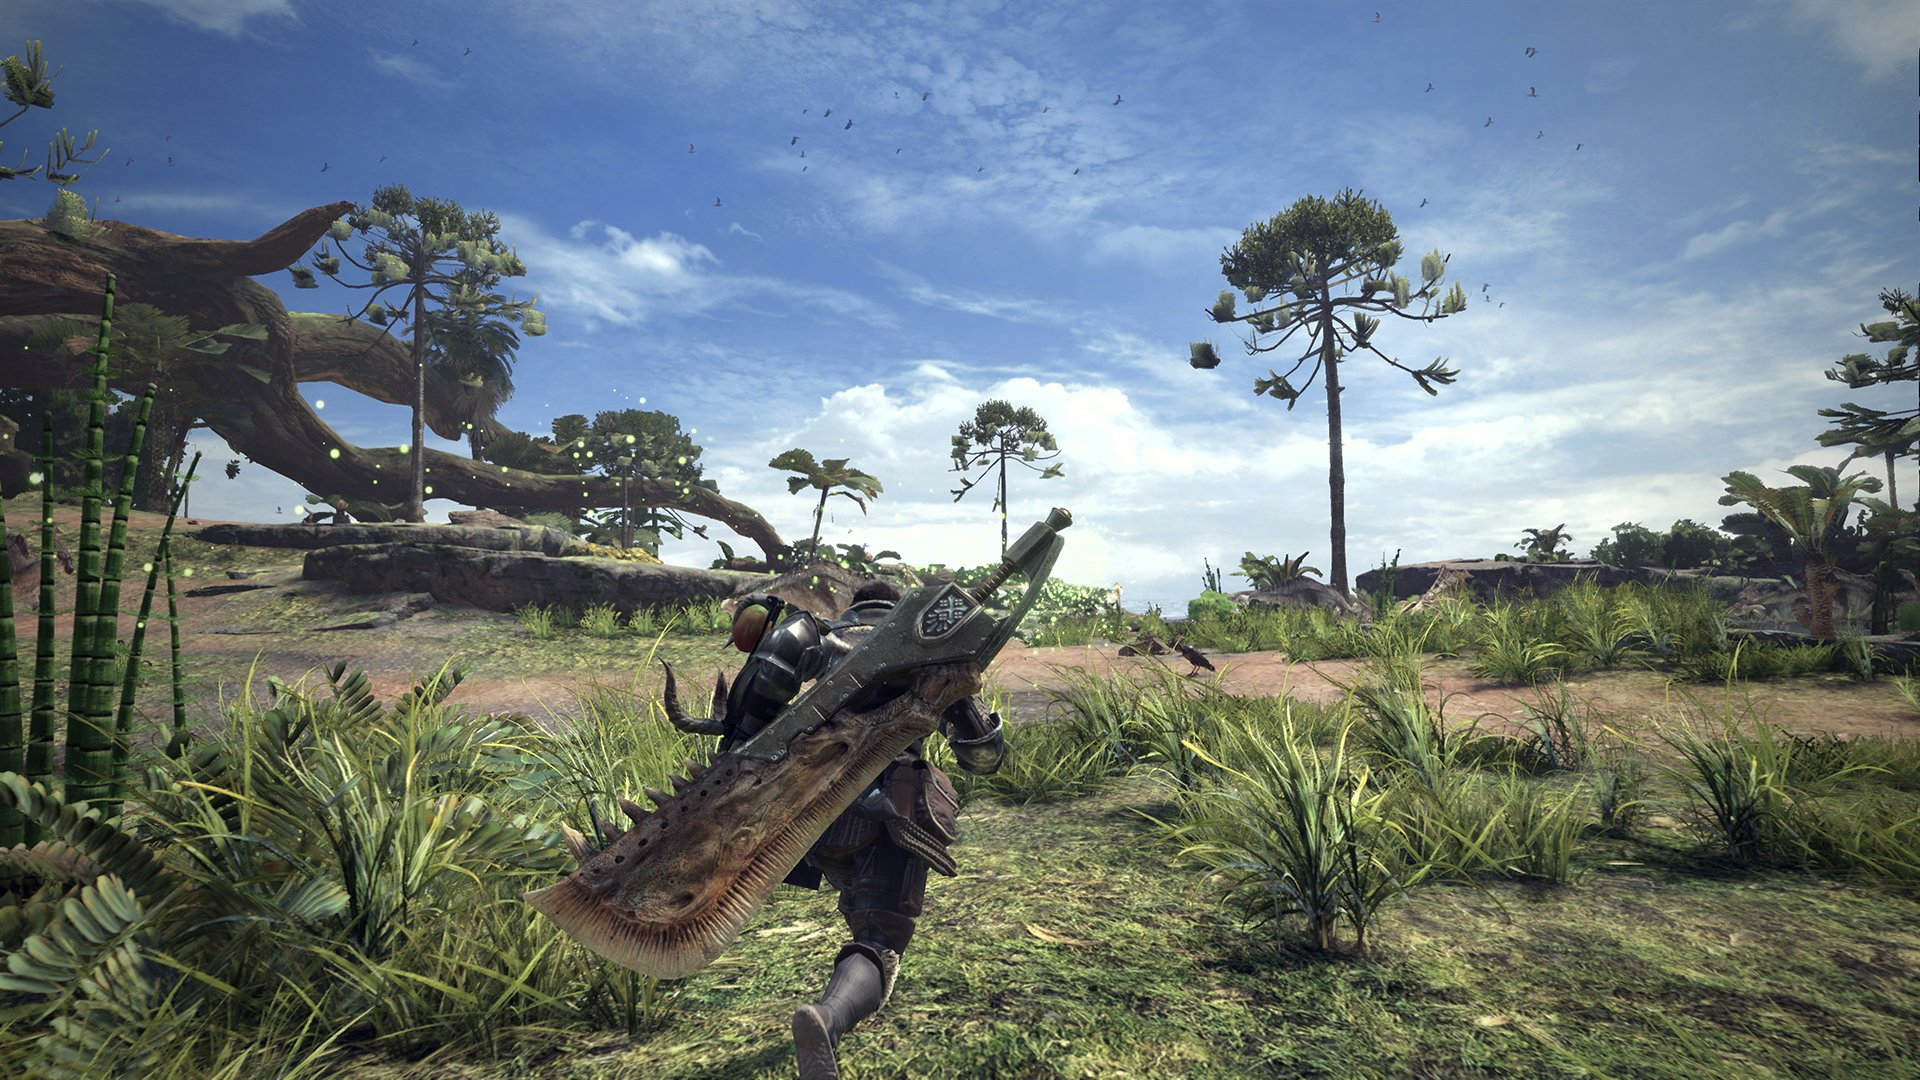 Review: Monster Hunter: World — A captivating world with